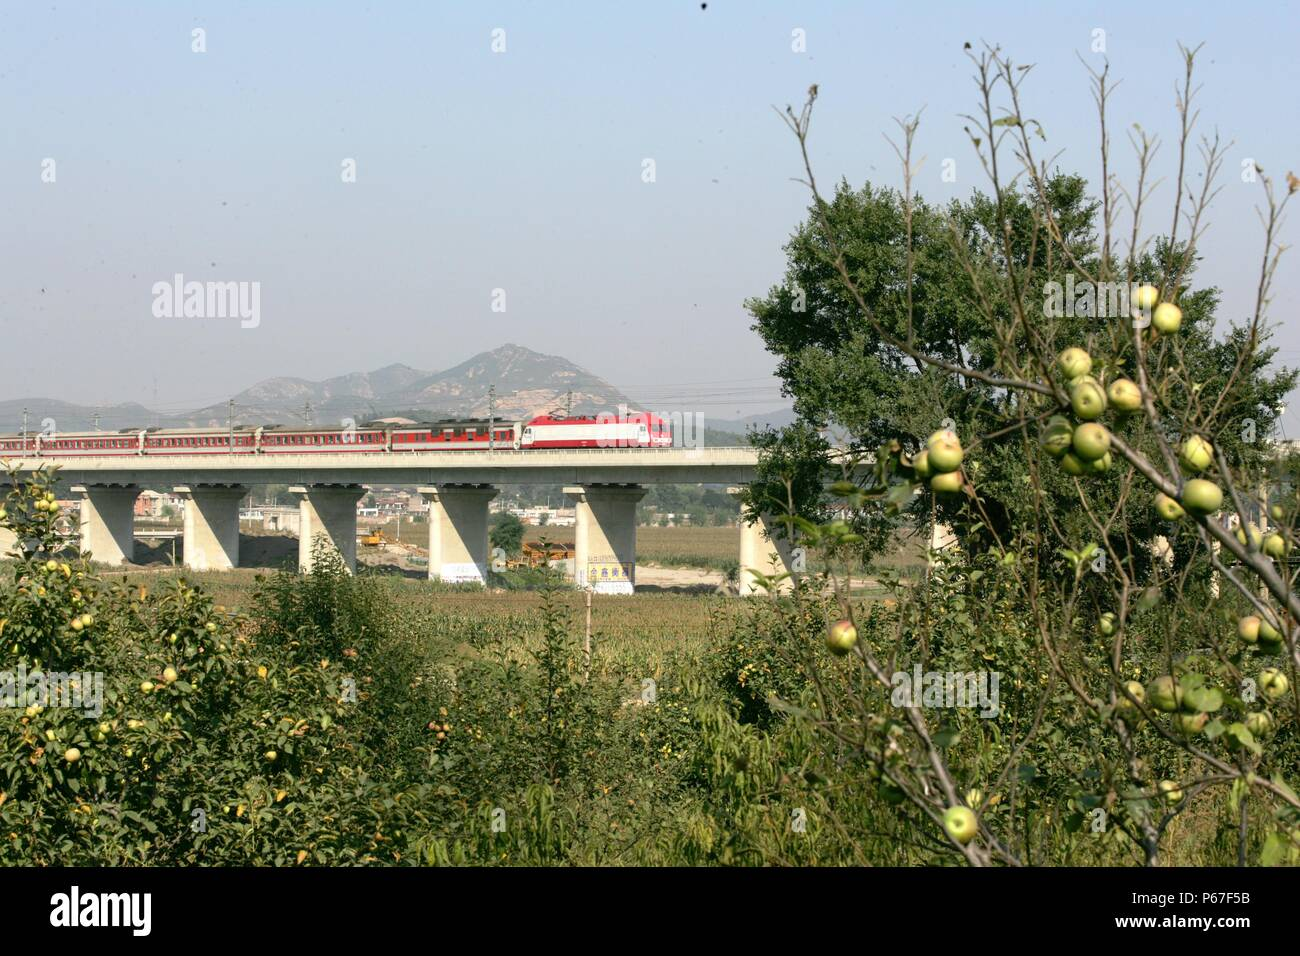 Building the new railway between Jinzhou and Qinghuangdao. September 2005. - Stock Image